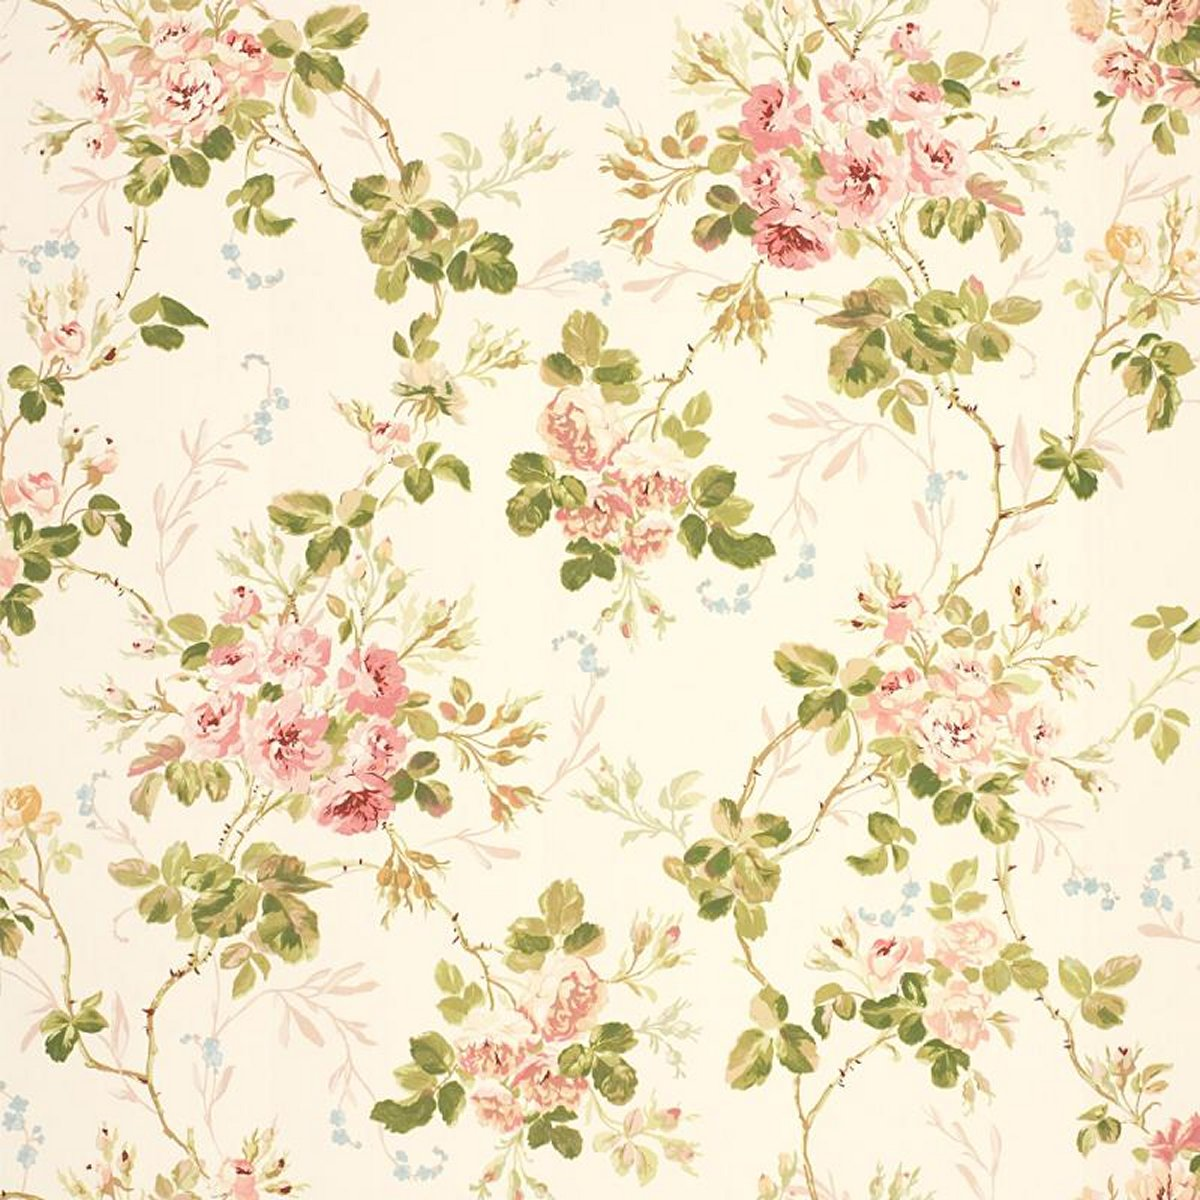 Vintage Flower Wallpaper Tumblr